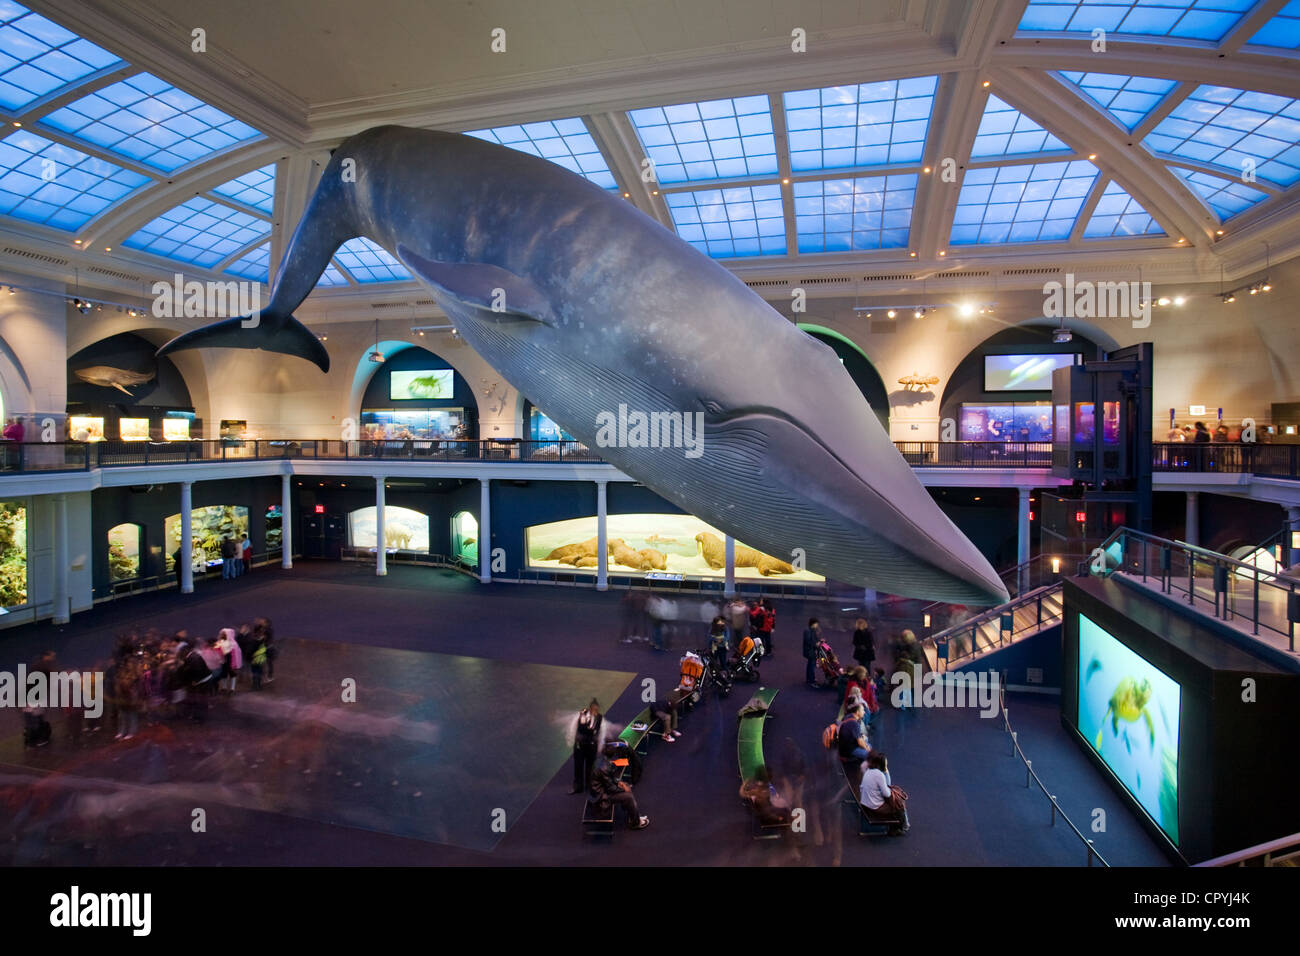 United States, New York, American Museum of Natural History - Stock Image